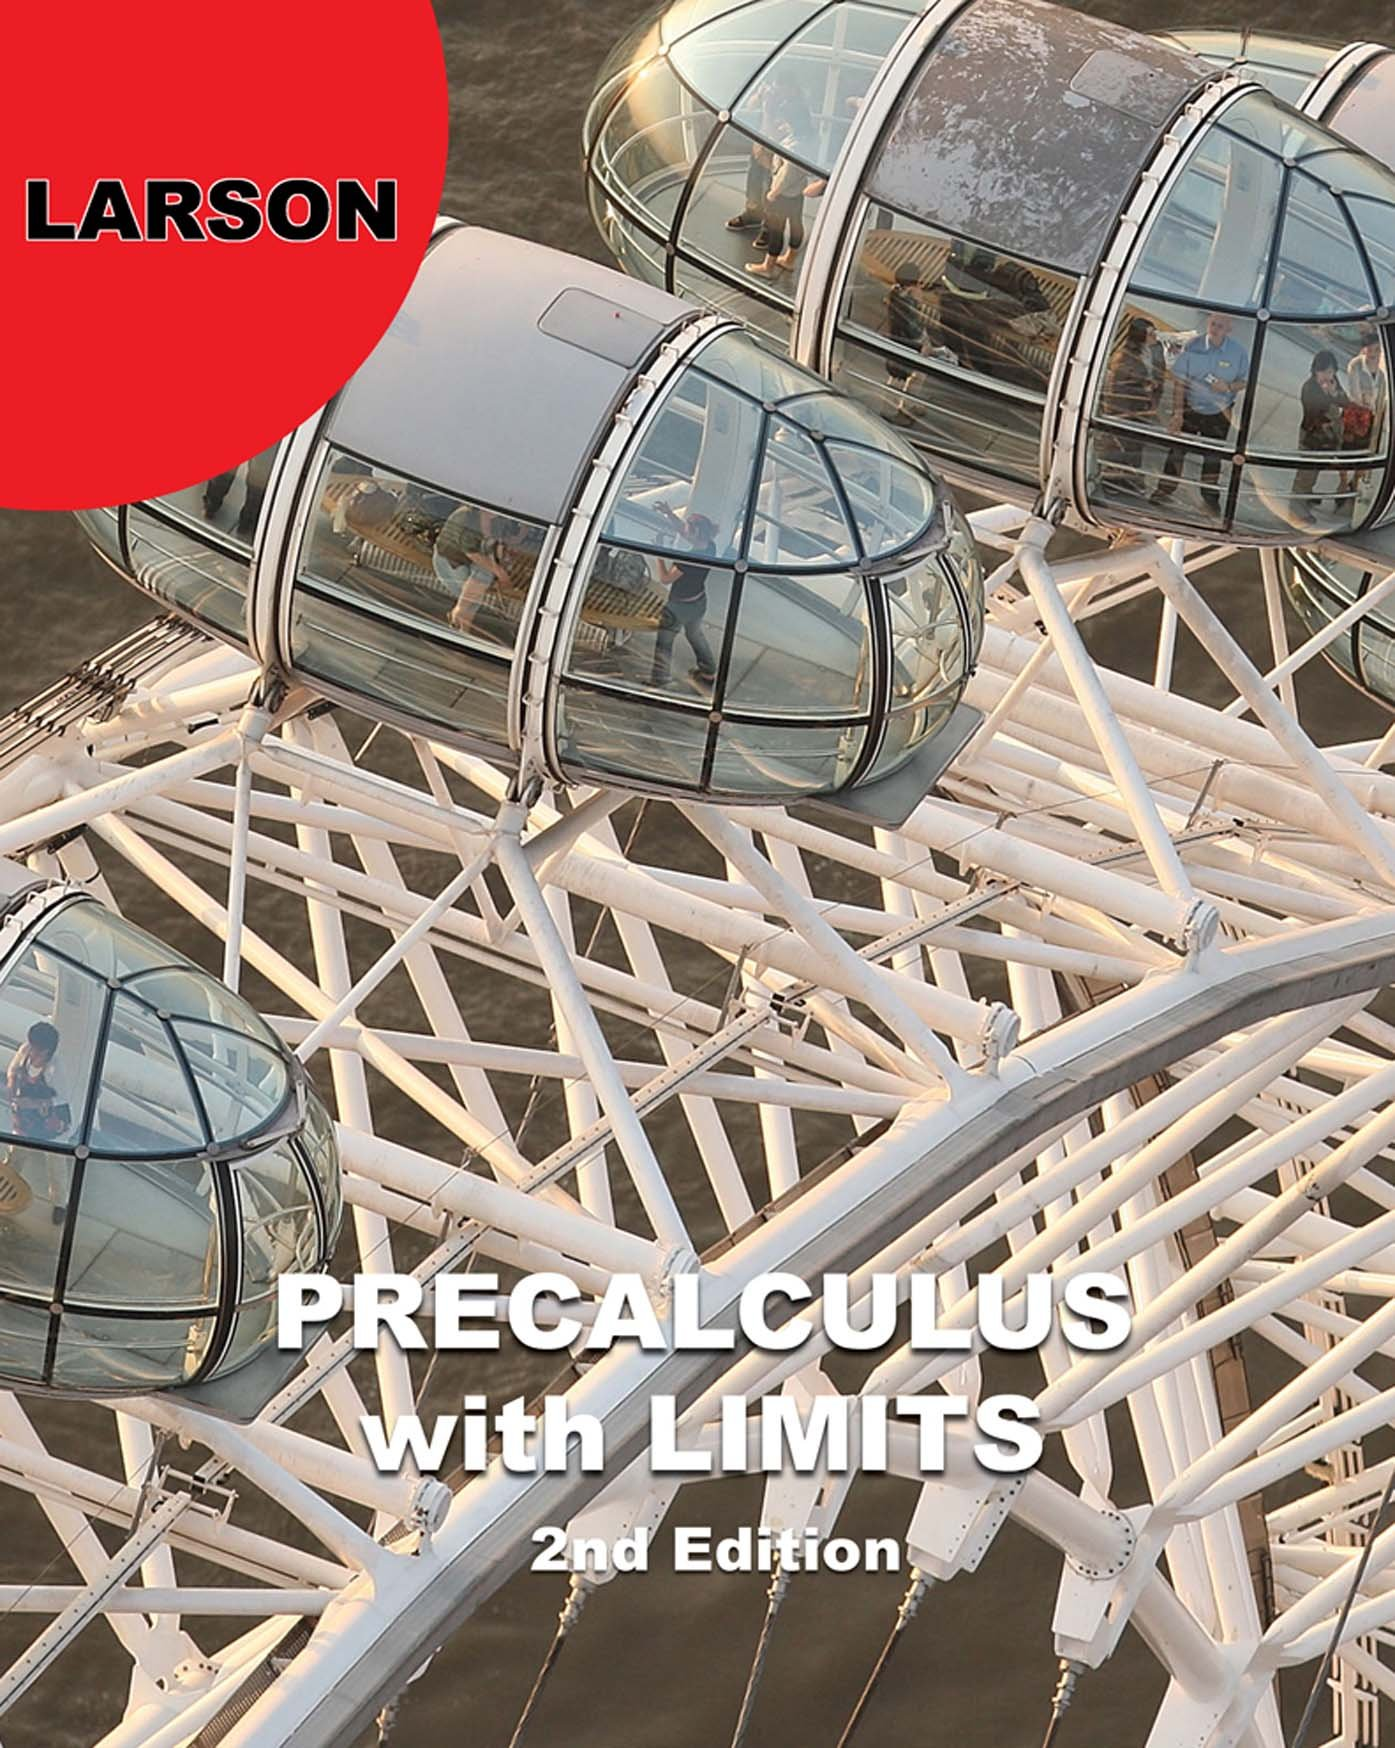 Precalculus With Limits Textbook Pdf Larson